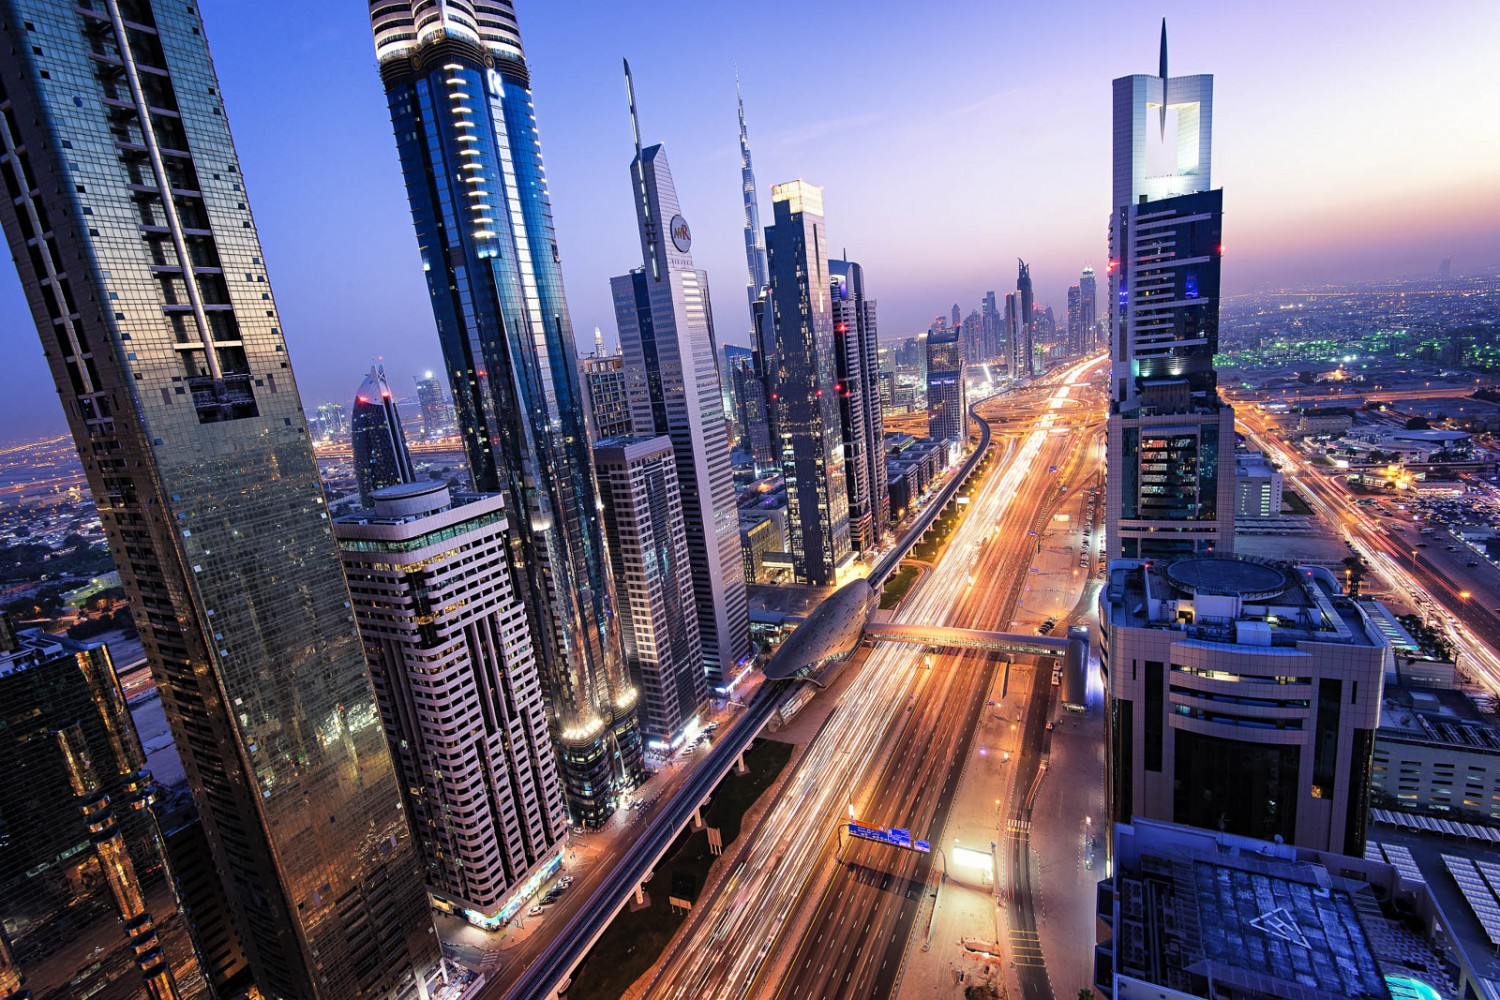 7 Expert Tips For Photographing Dubai from 7 Pro Photographers